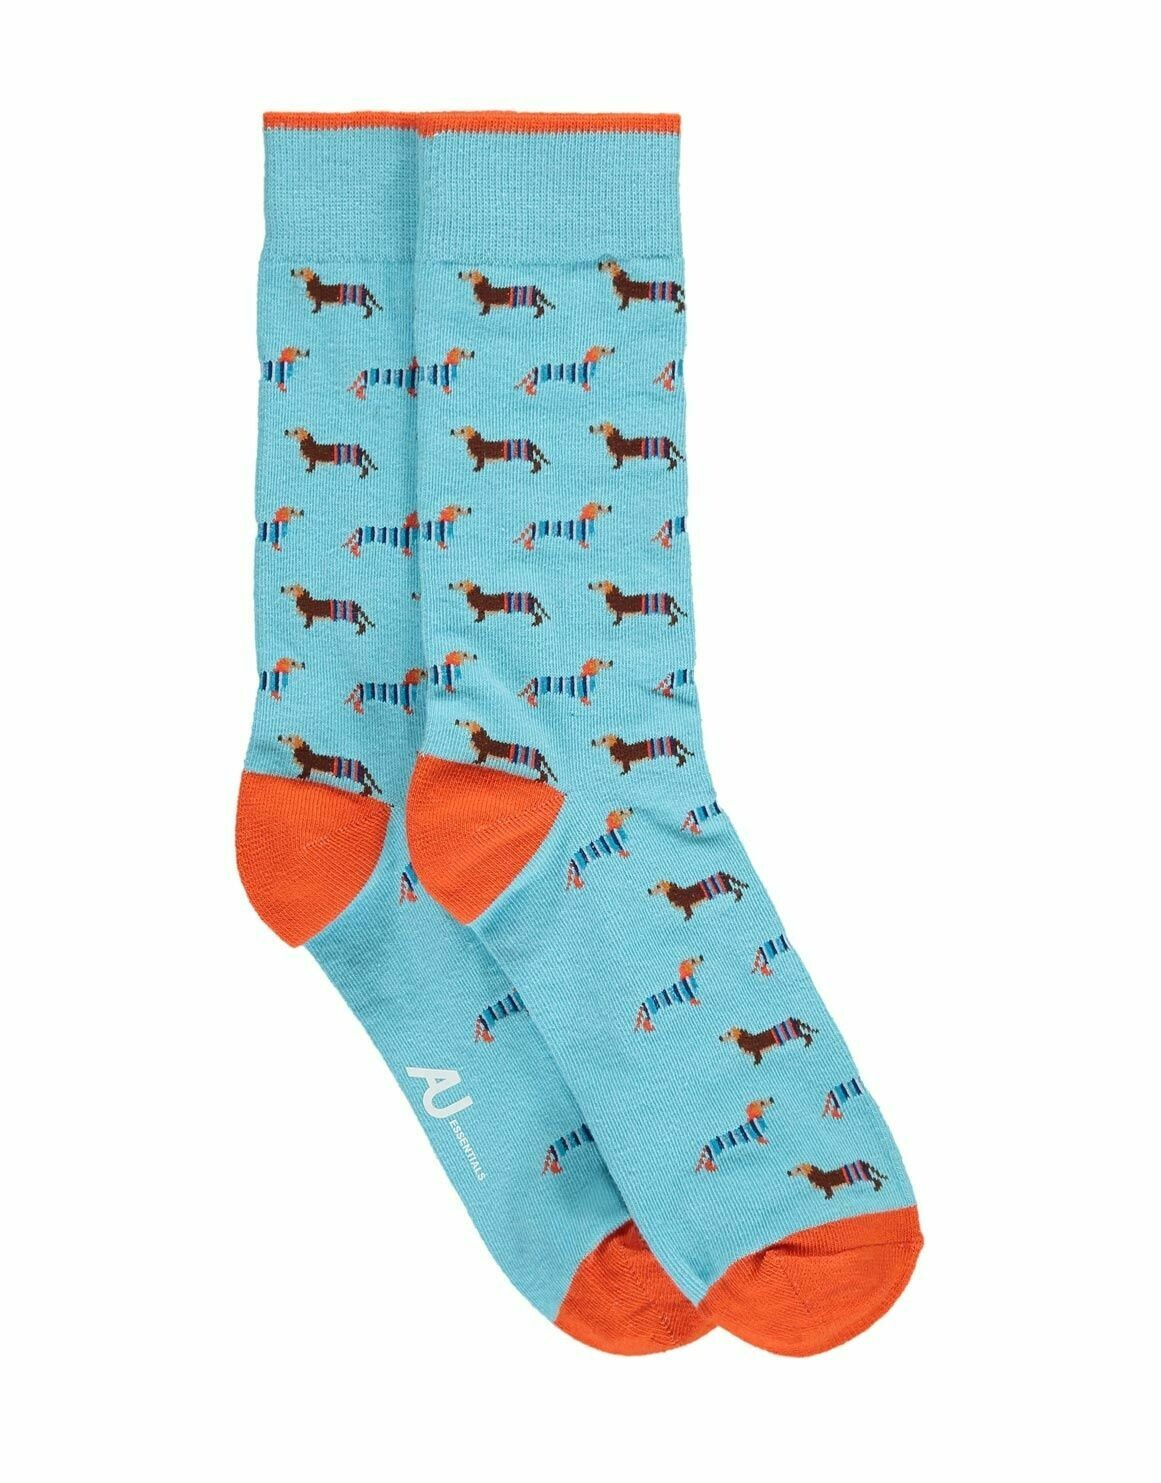 Blue socks with small Dachshund pattern